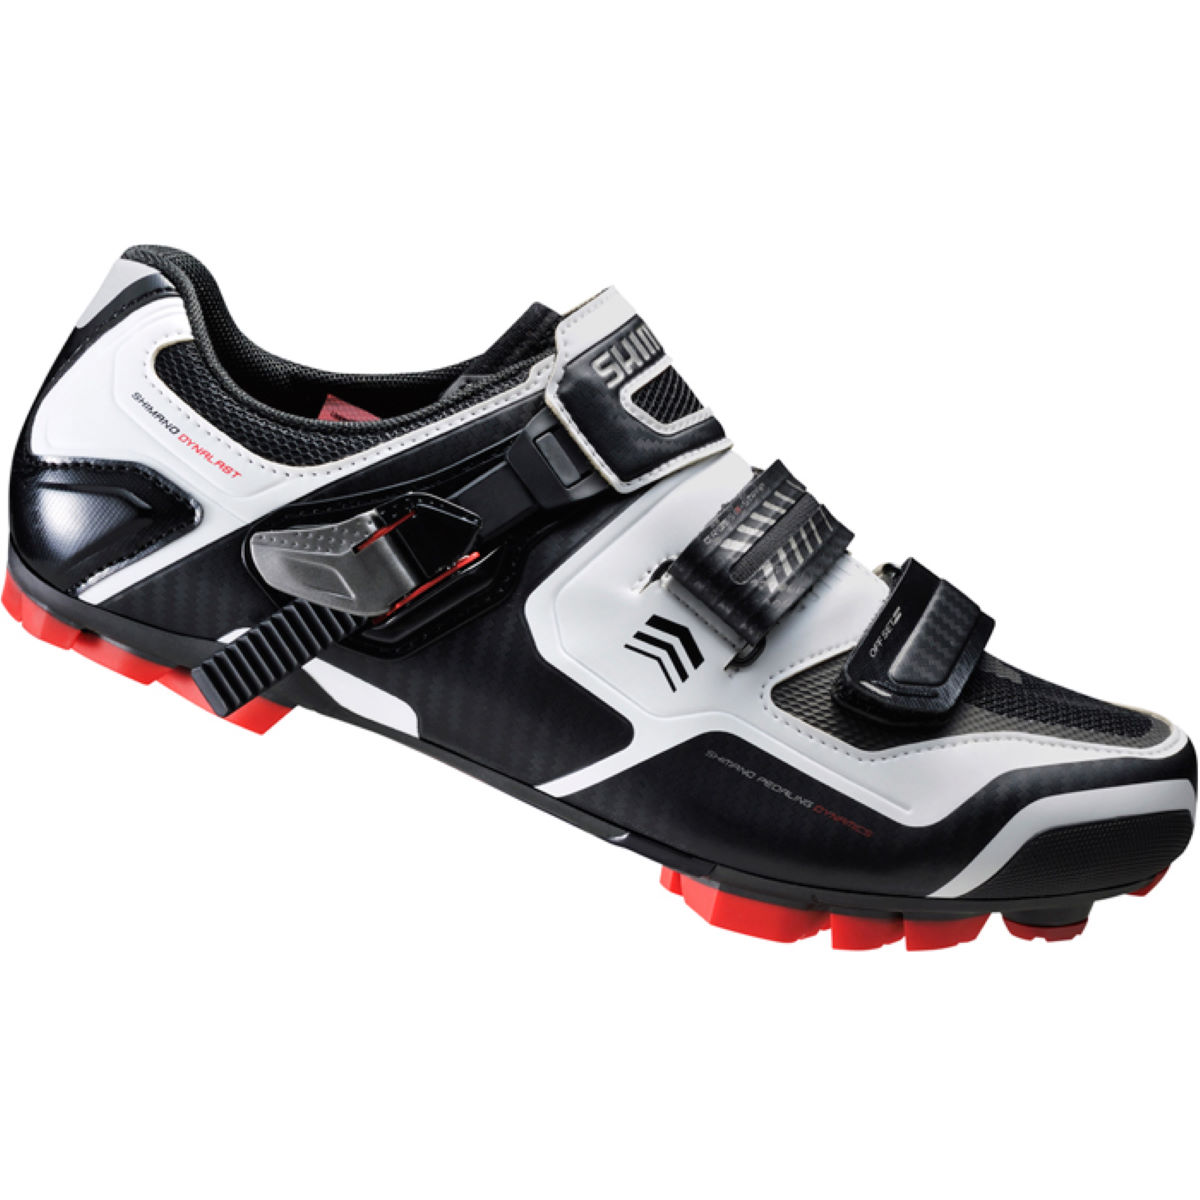 Cheap Mtb Shoes